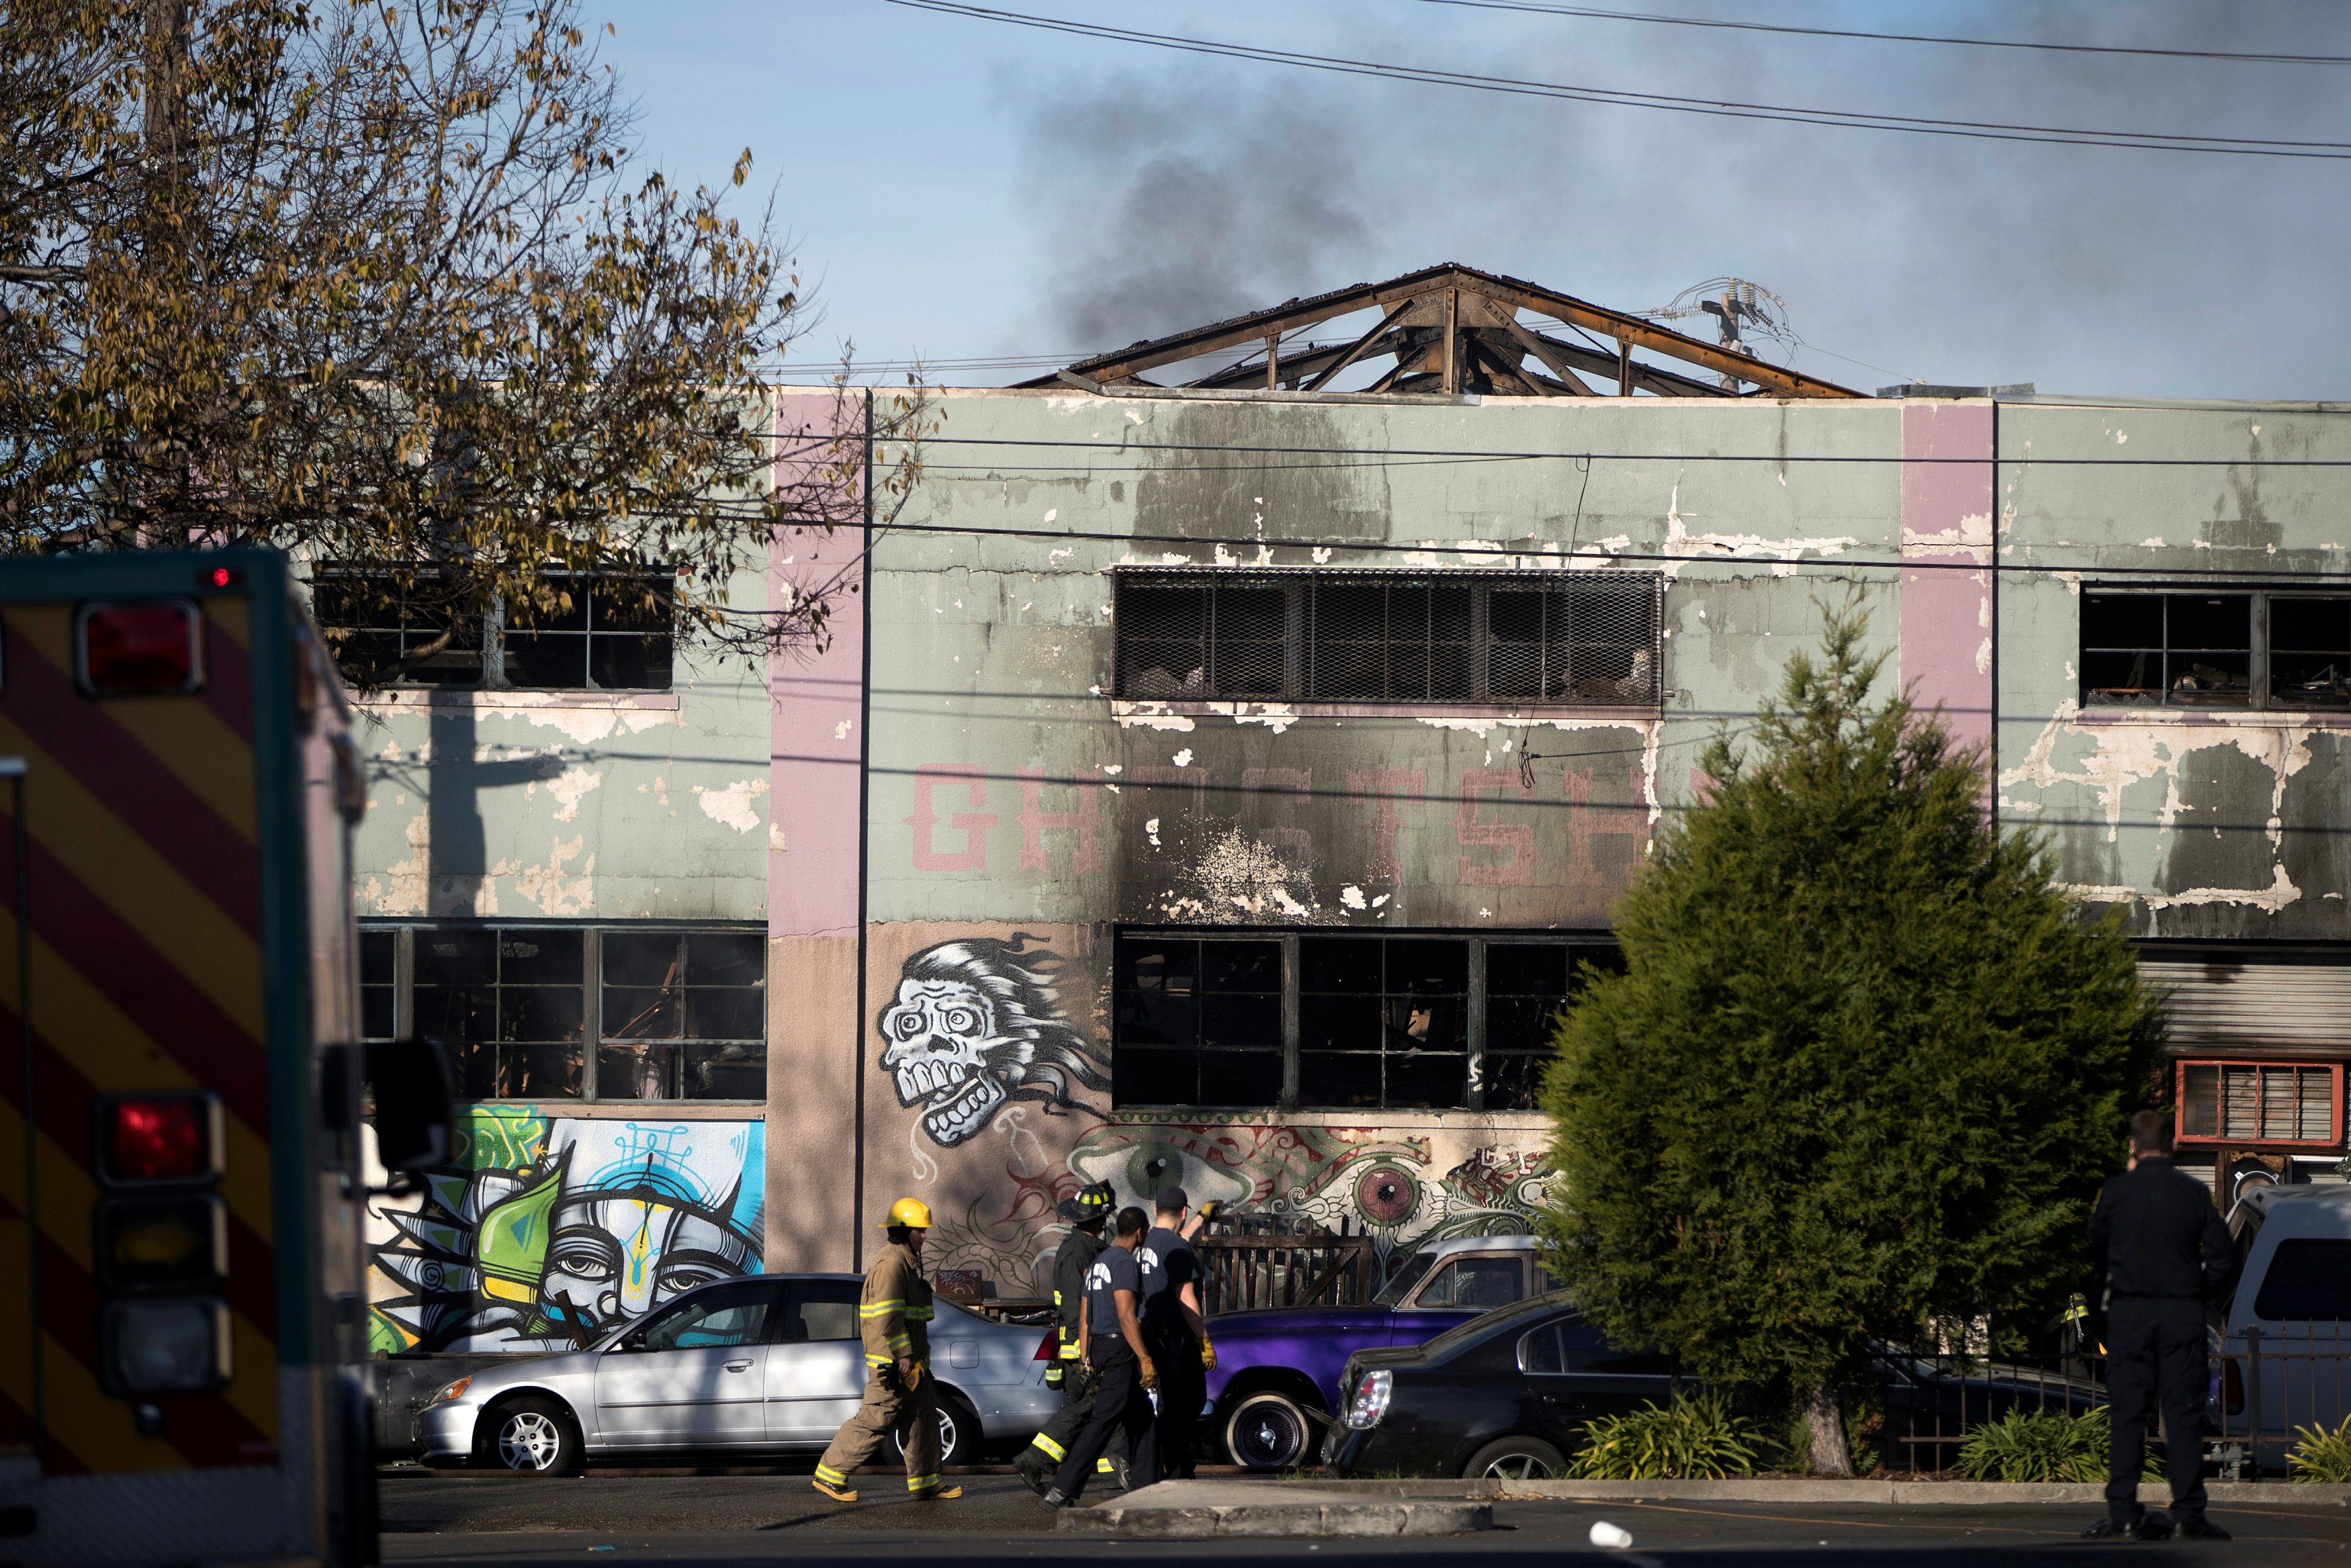 Smoke rises from a smoldering building where a fire broke out during an electronic dance party late Friday evening, resulting in at least nine deaths and many unaccounted for in the Fruitvale district of Oakland, California, U.S. December 3, 2016. REUTERS/Stephen Lam